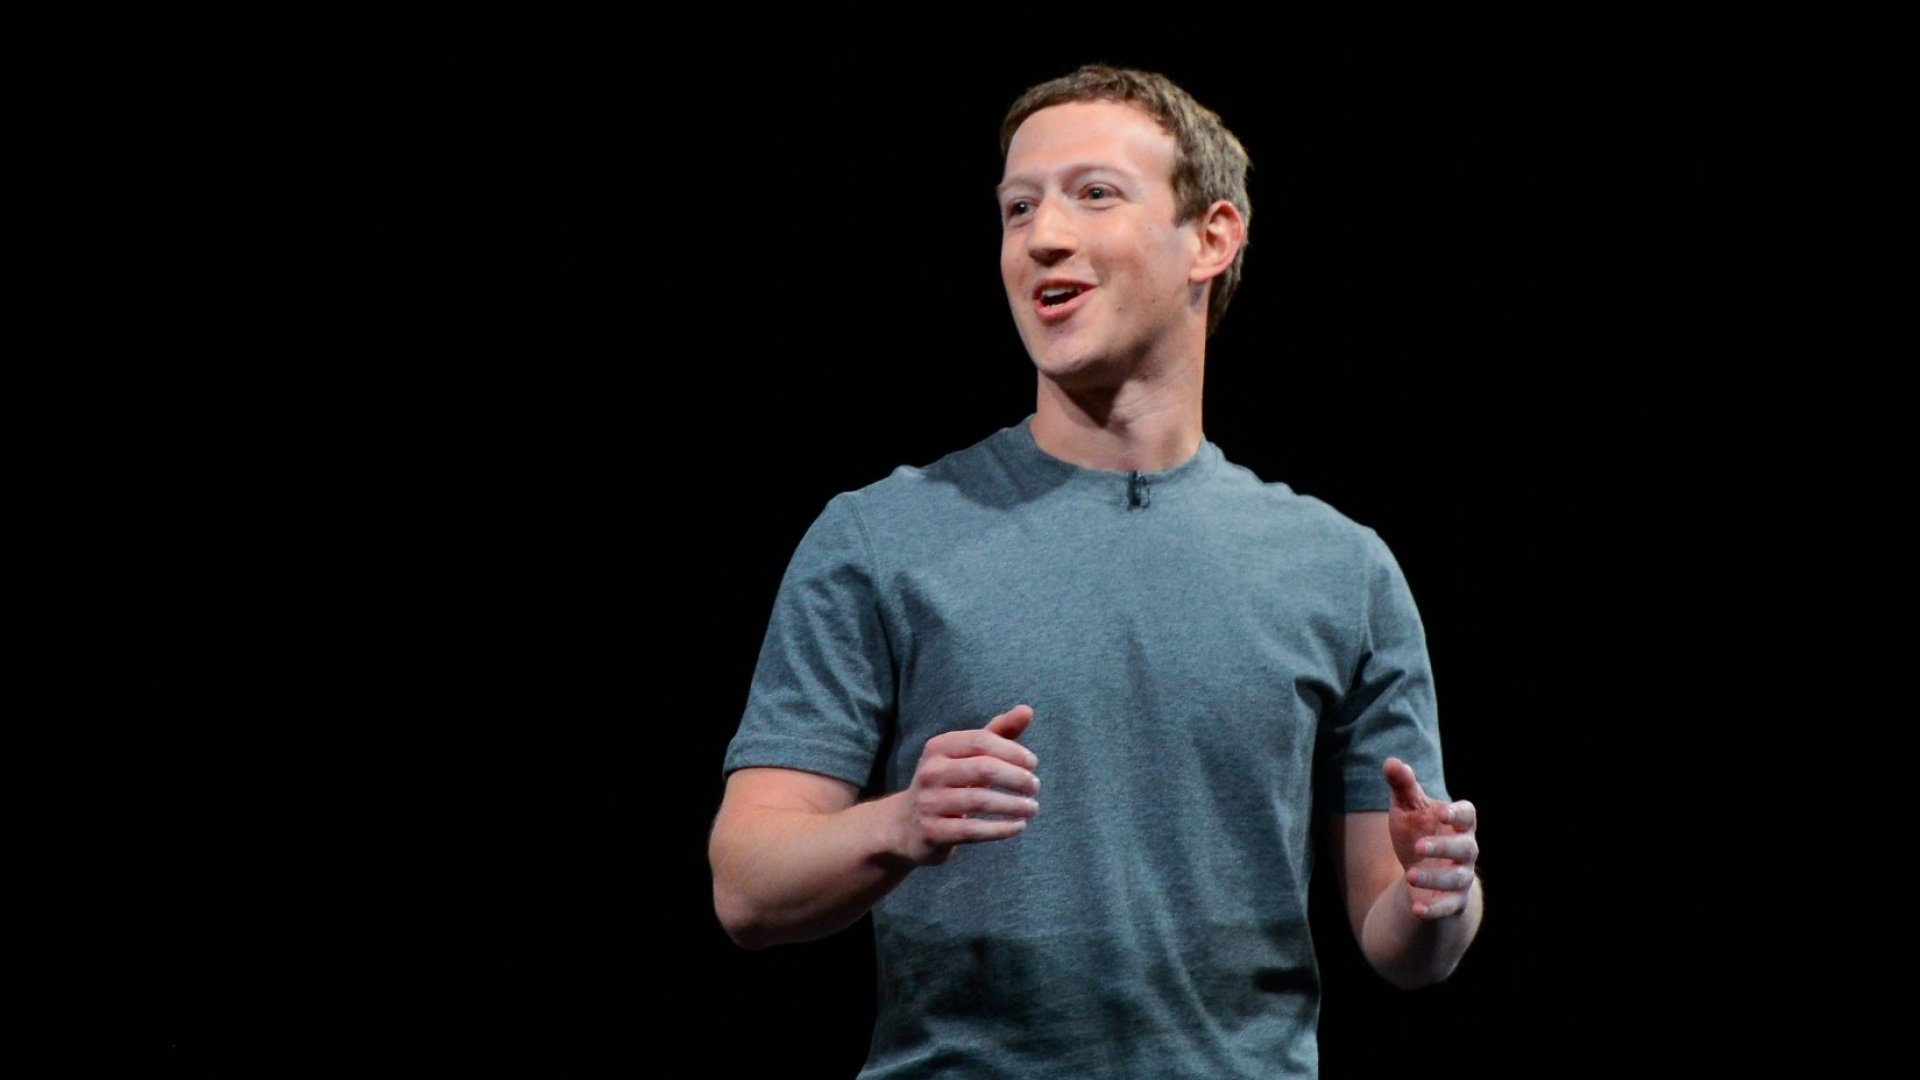 Facebook's Big F8 Conference Starts Tomorrow: Here's What to Expect